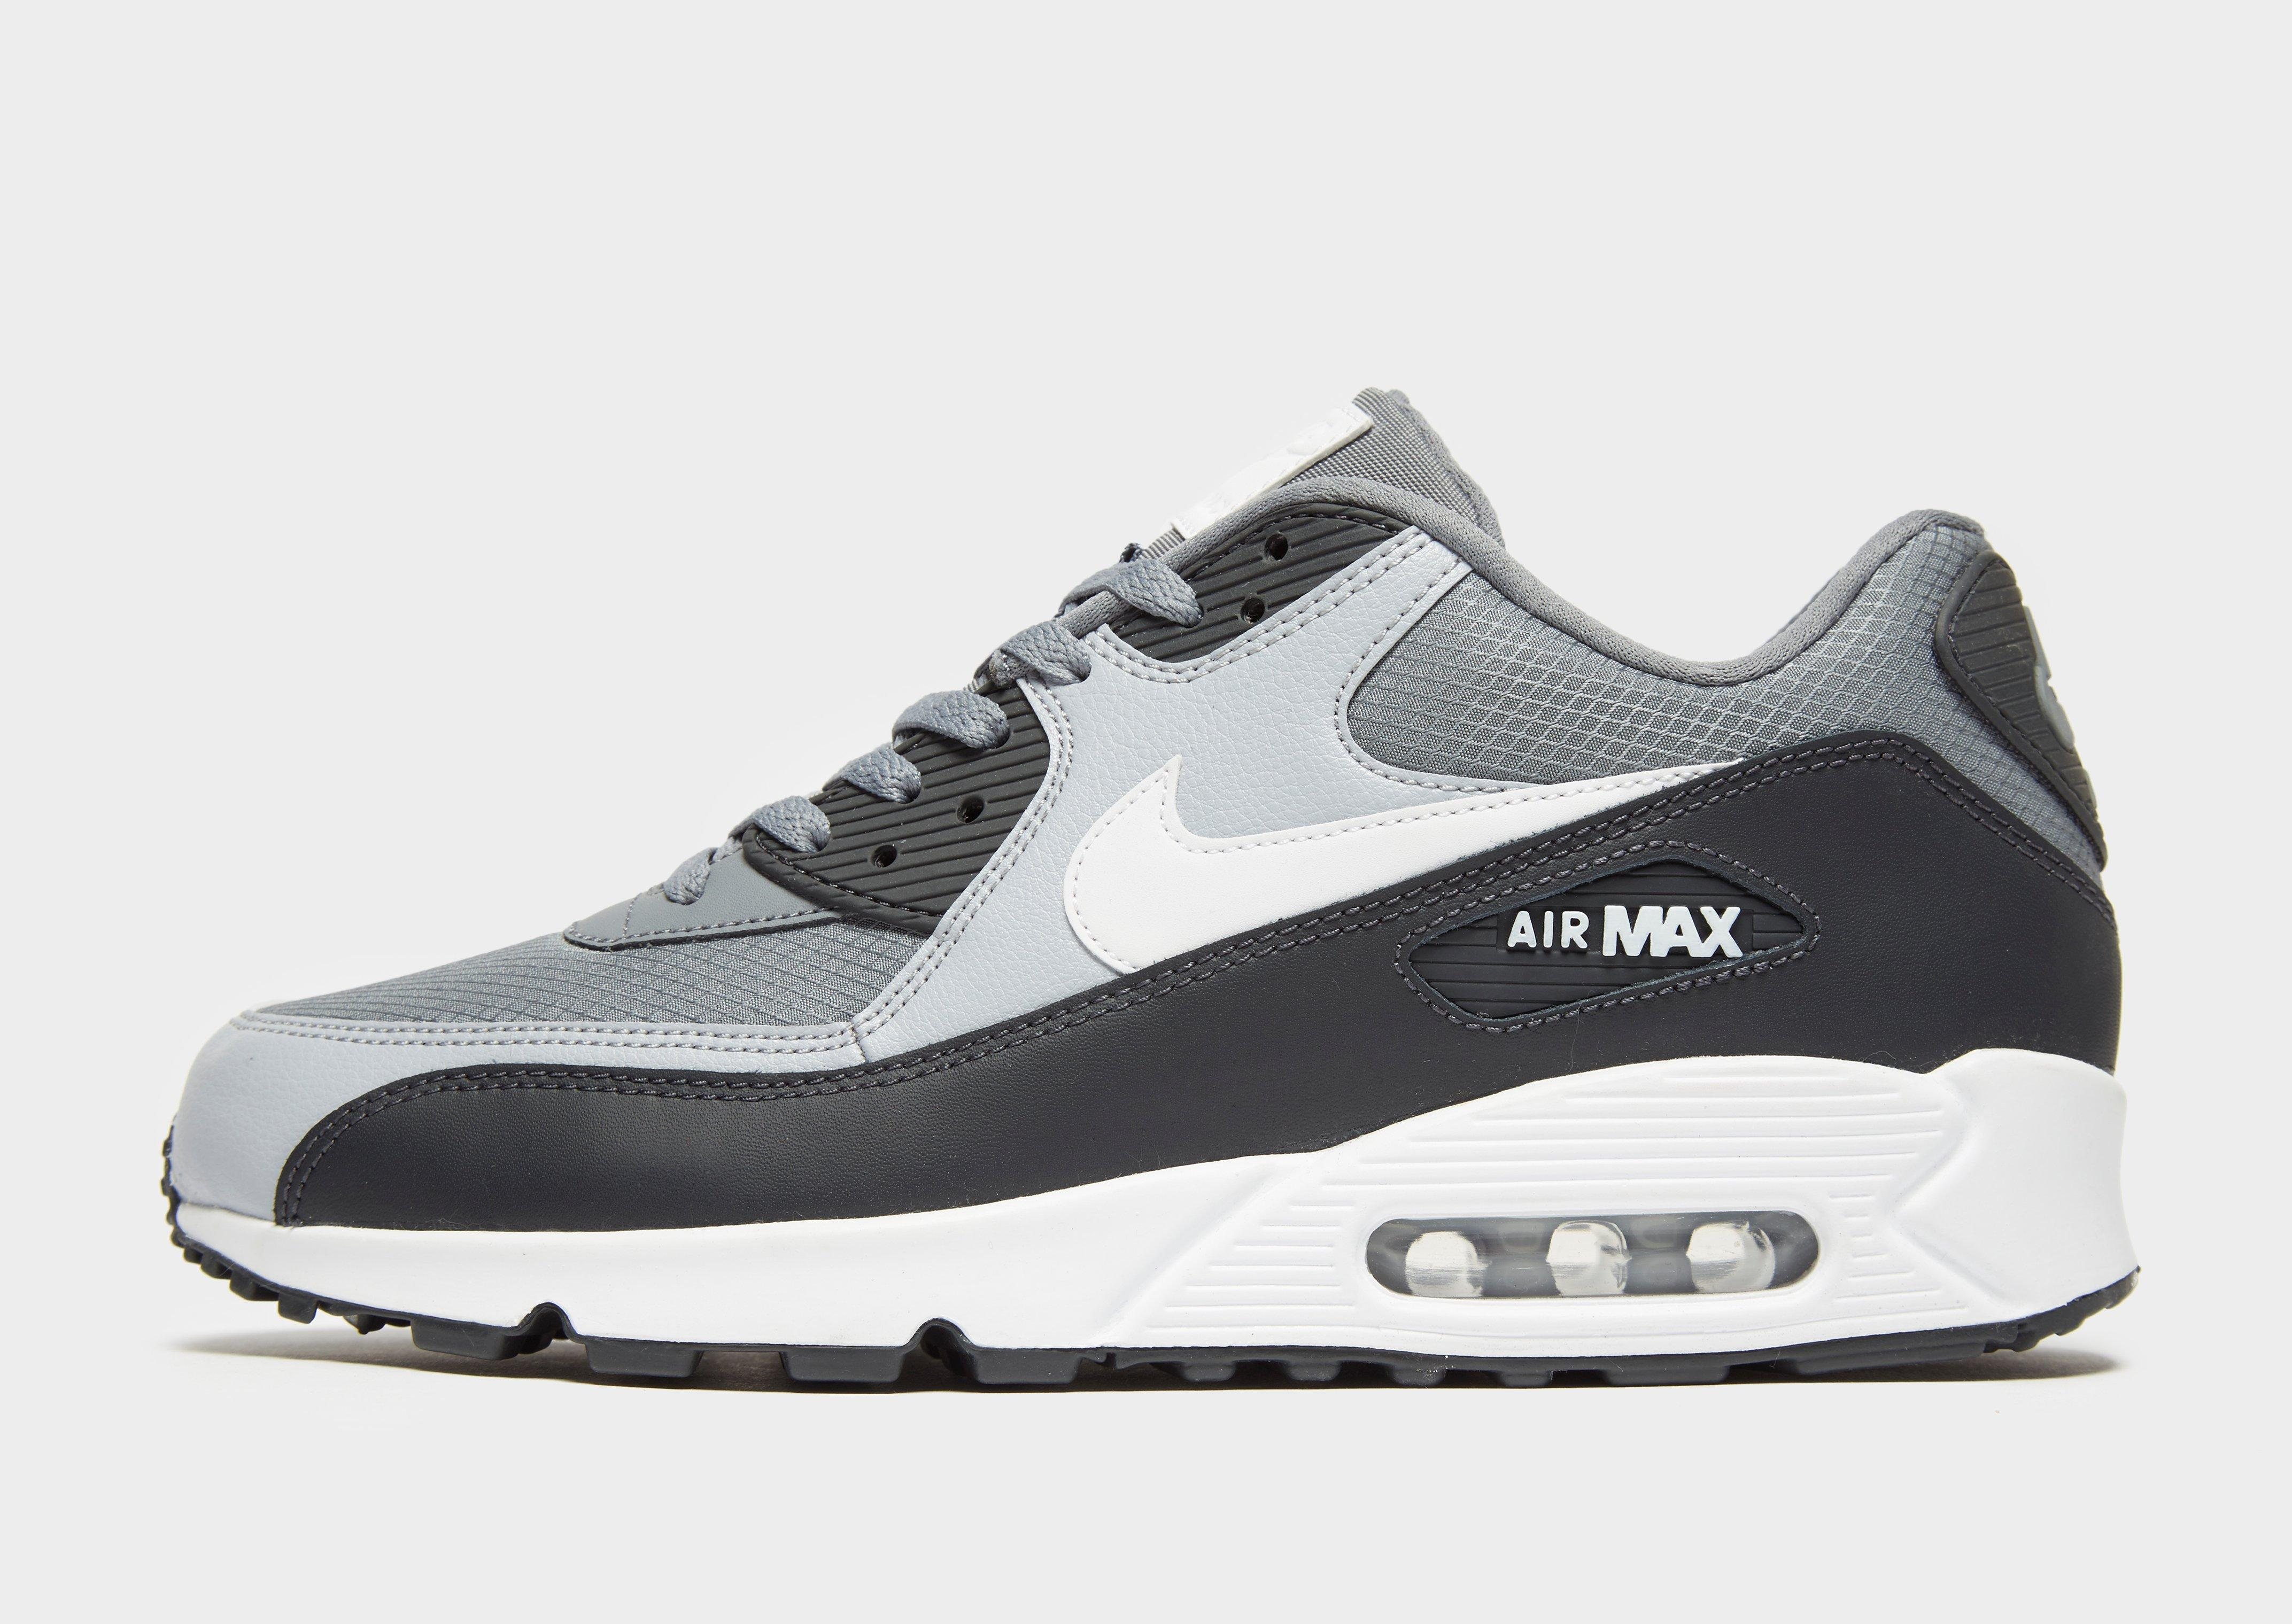 the nike air max 90 essential grey